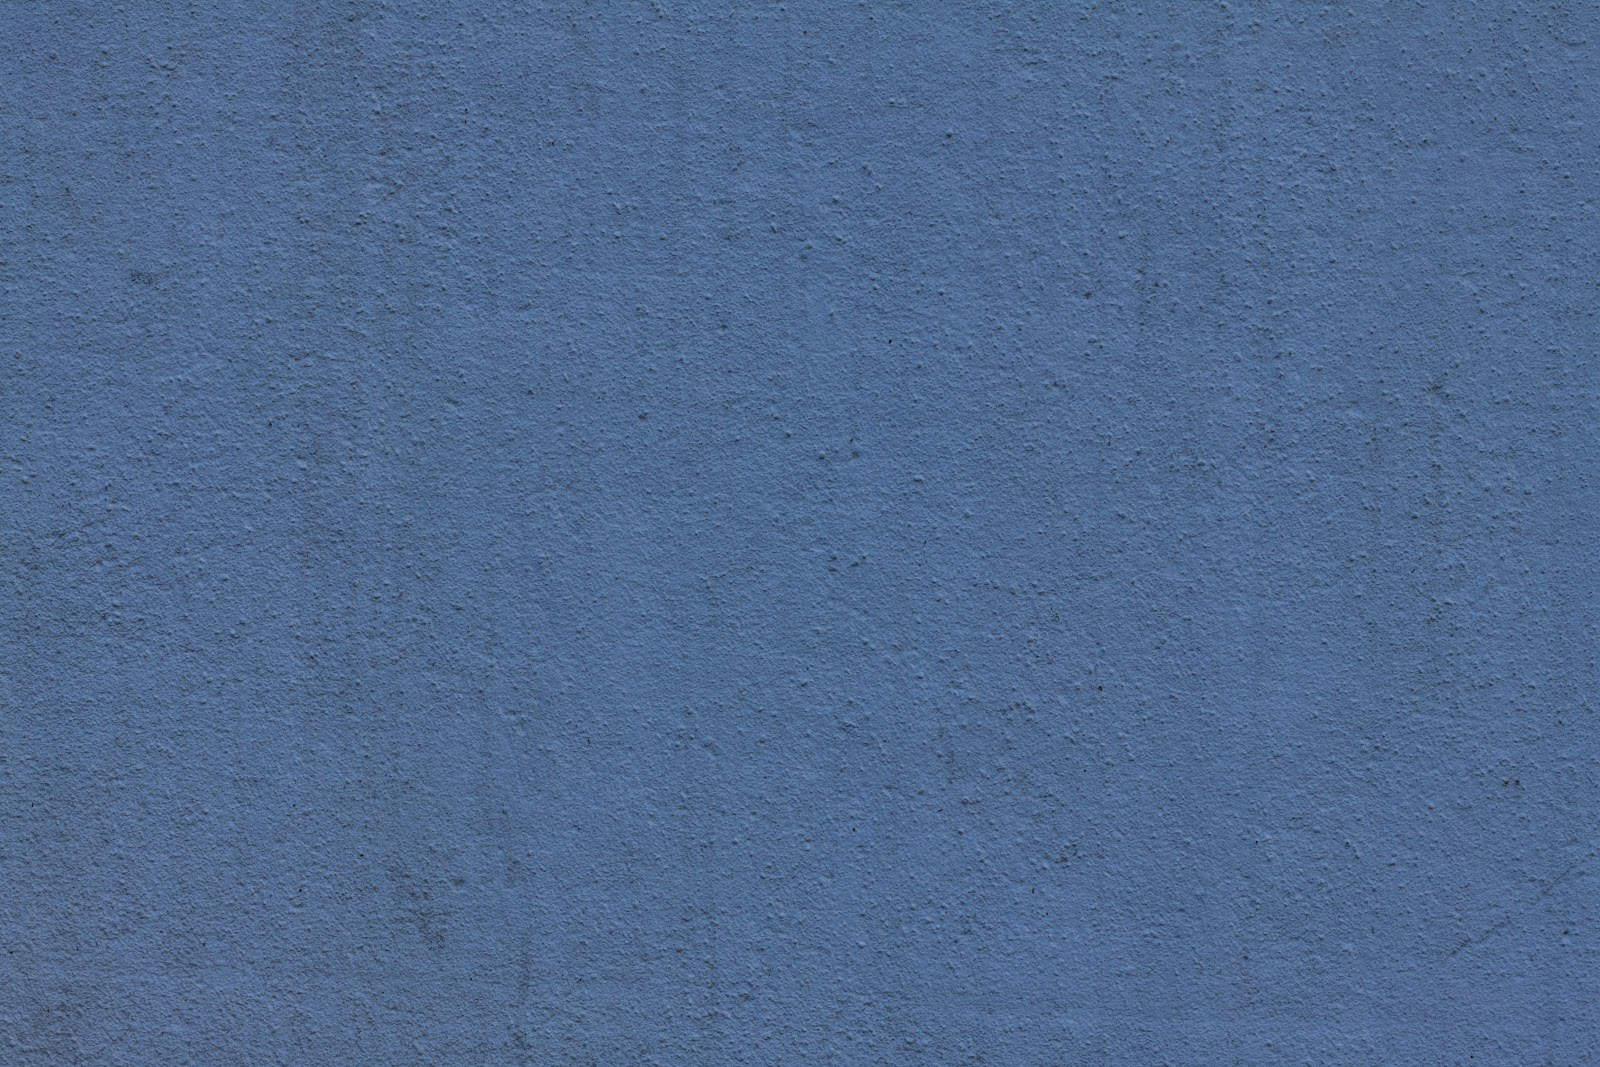 Blue wall plaster texture with dirt streaks